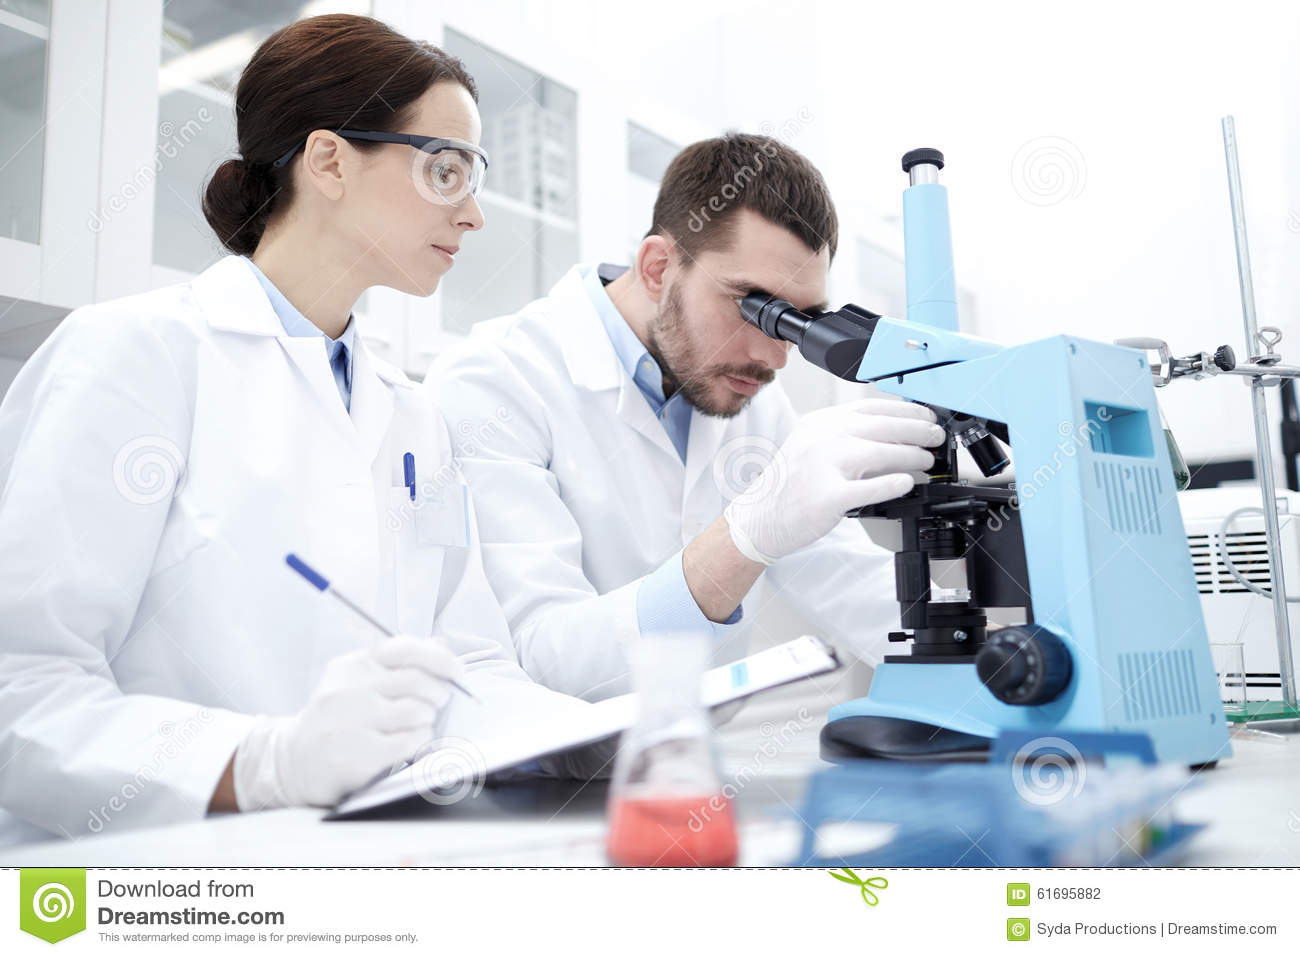 scientists microscope biology lab science research technology chemistry making test laboratory clipboard young concept doctors preview